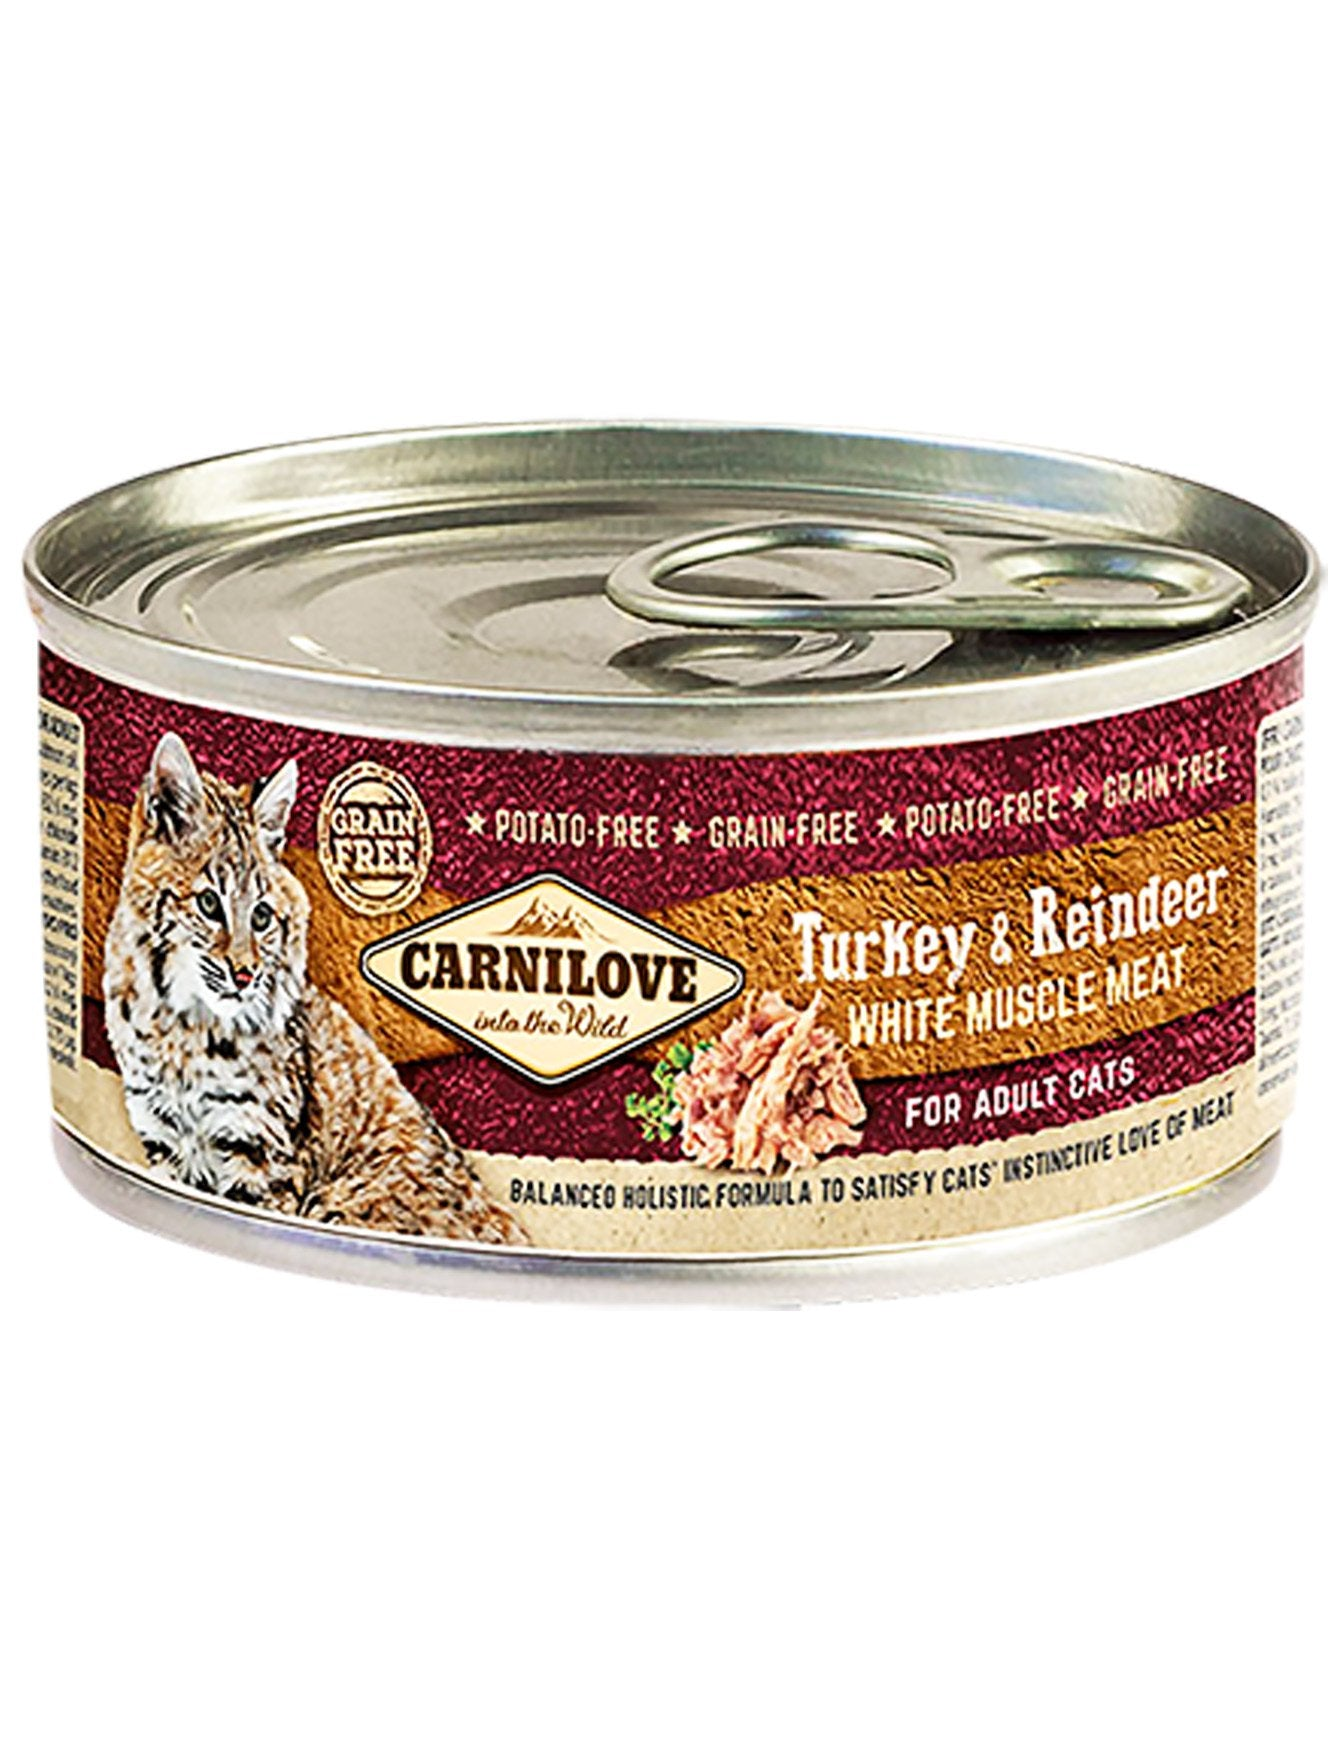 Carnilove Turkey & Reindeer Wet Cat Food 100g| Waggymeal Online Pet Store Malaysia